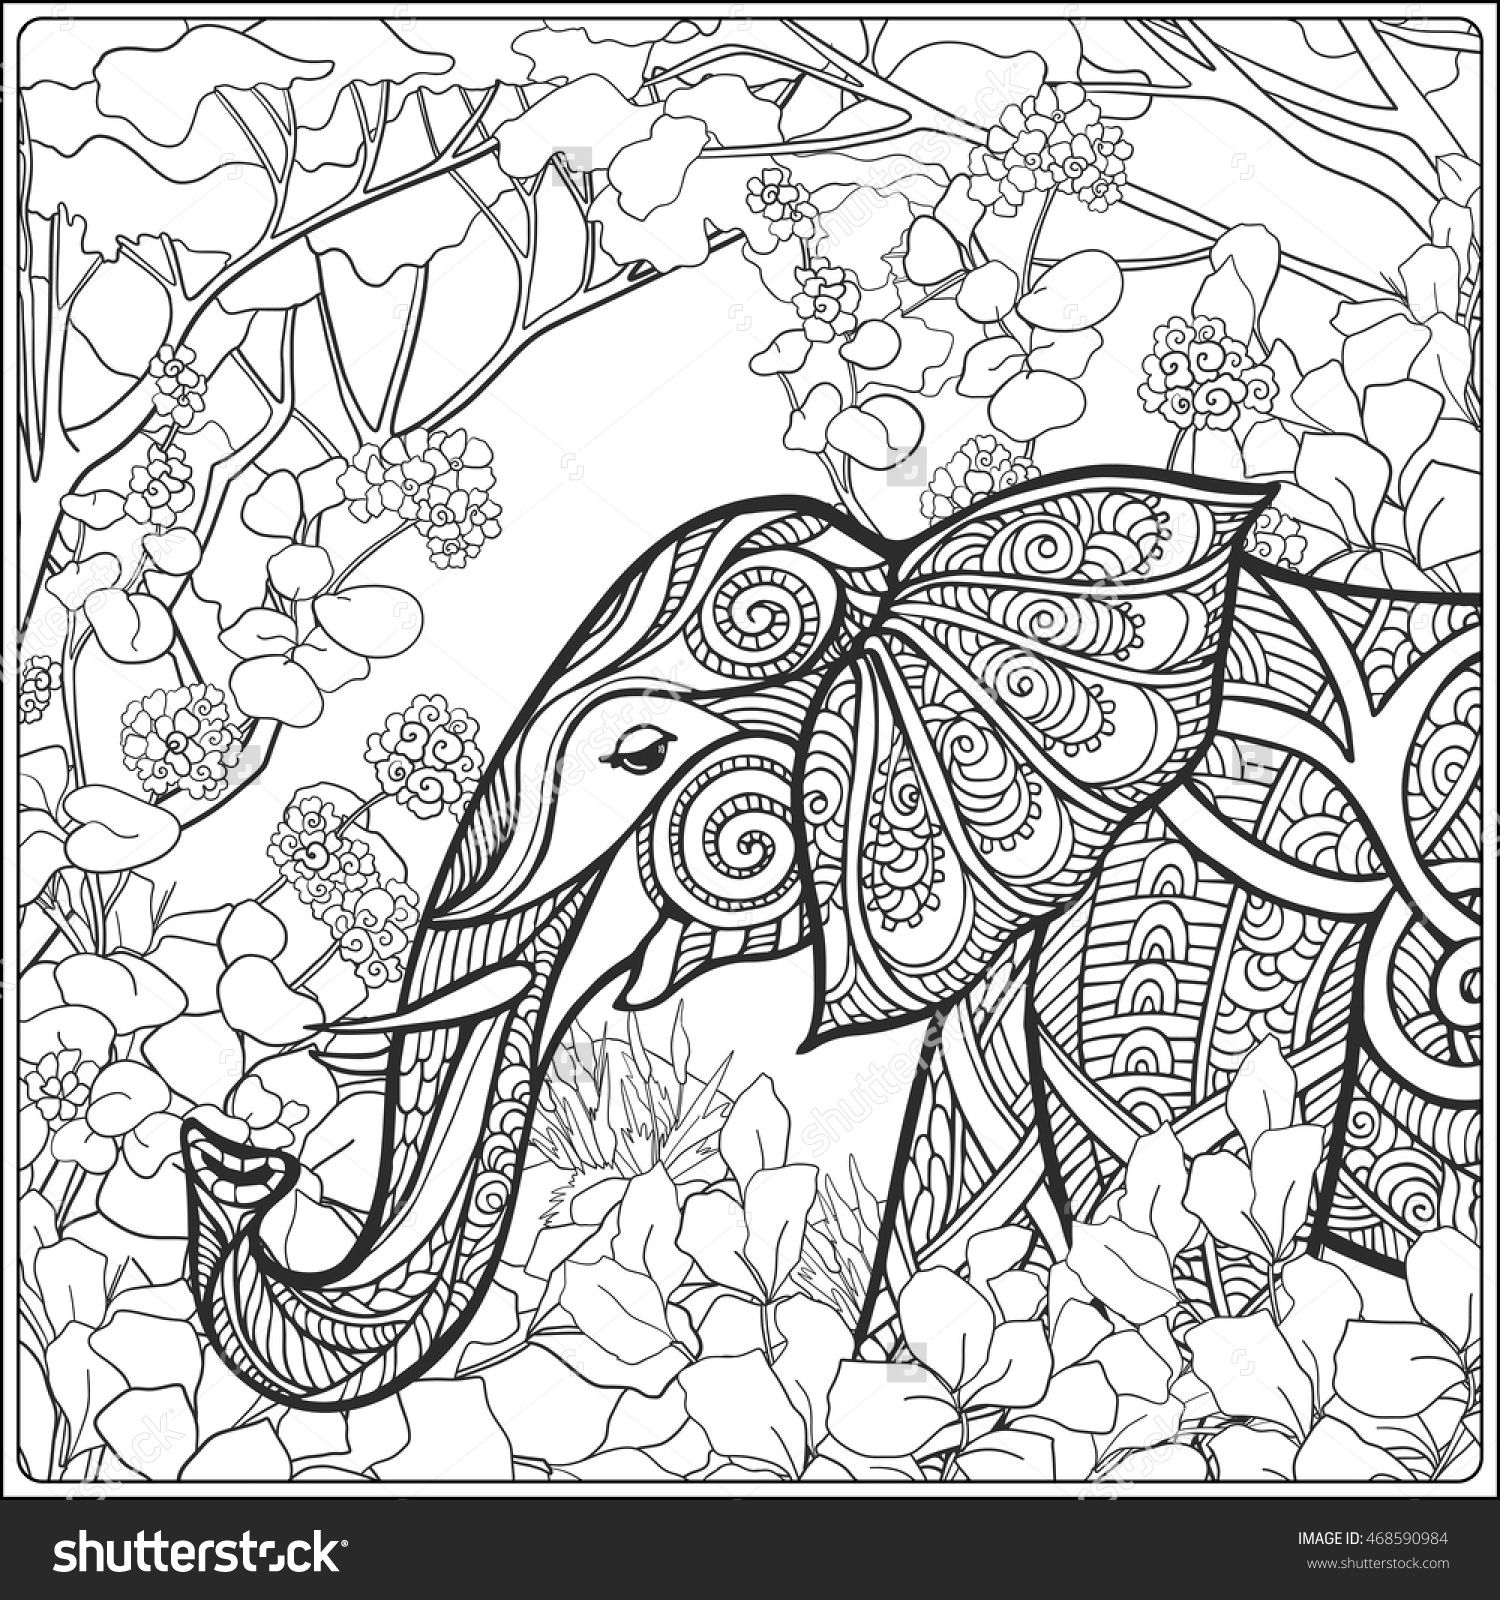 Coloring Page With Elephant In Forest Book For Adult And Older